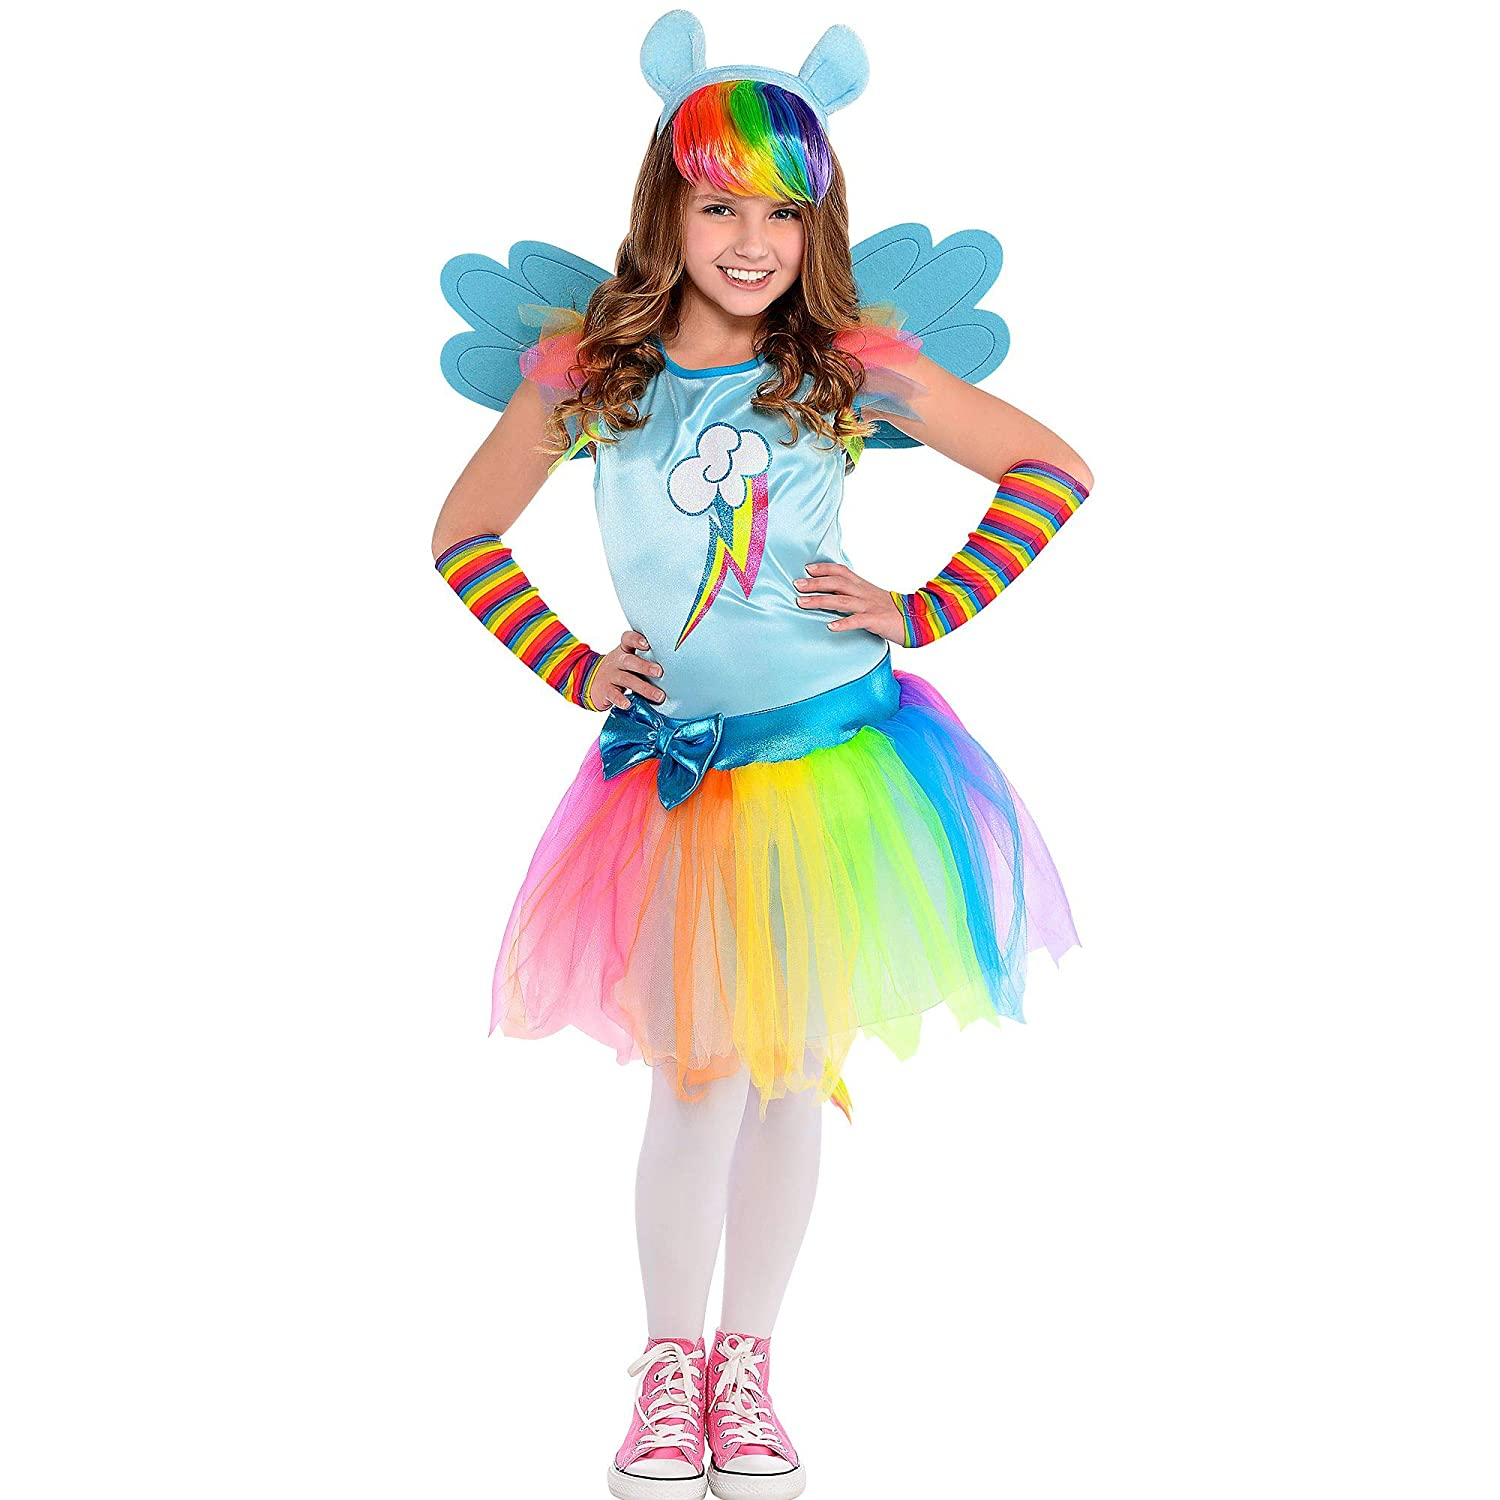 My Little Pony Tutu Costume Dress Rainbow Dash Tail Headband Arm Warmers Large 12-14